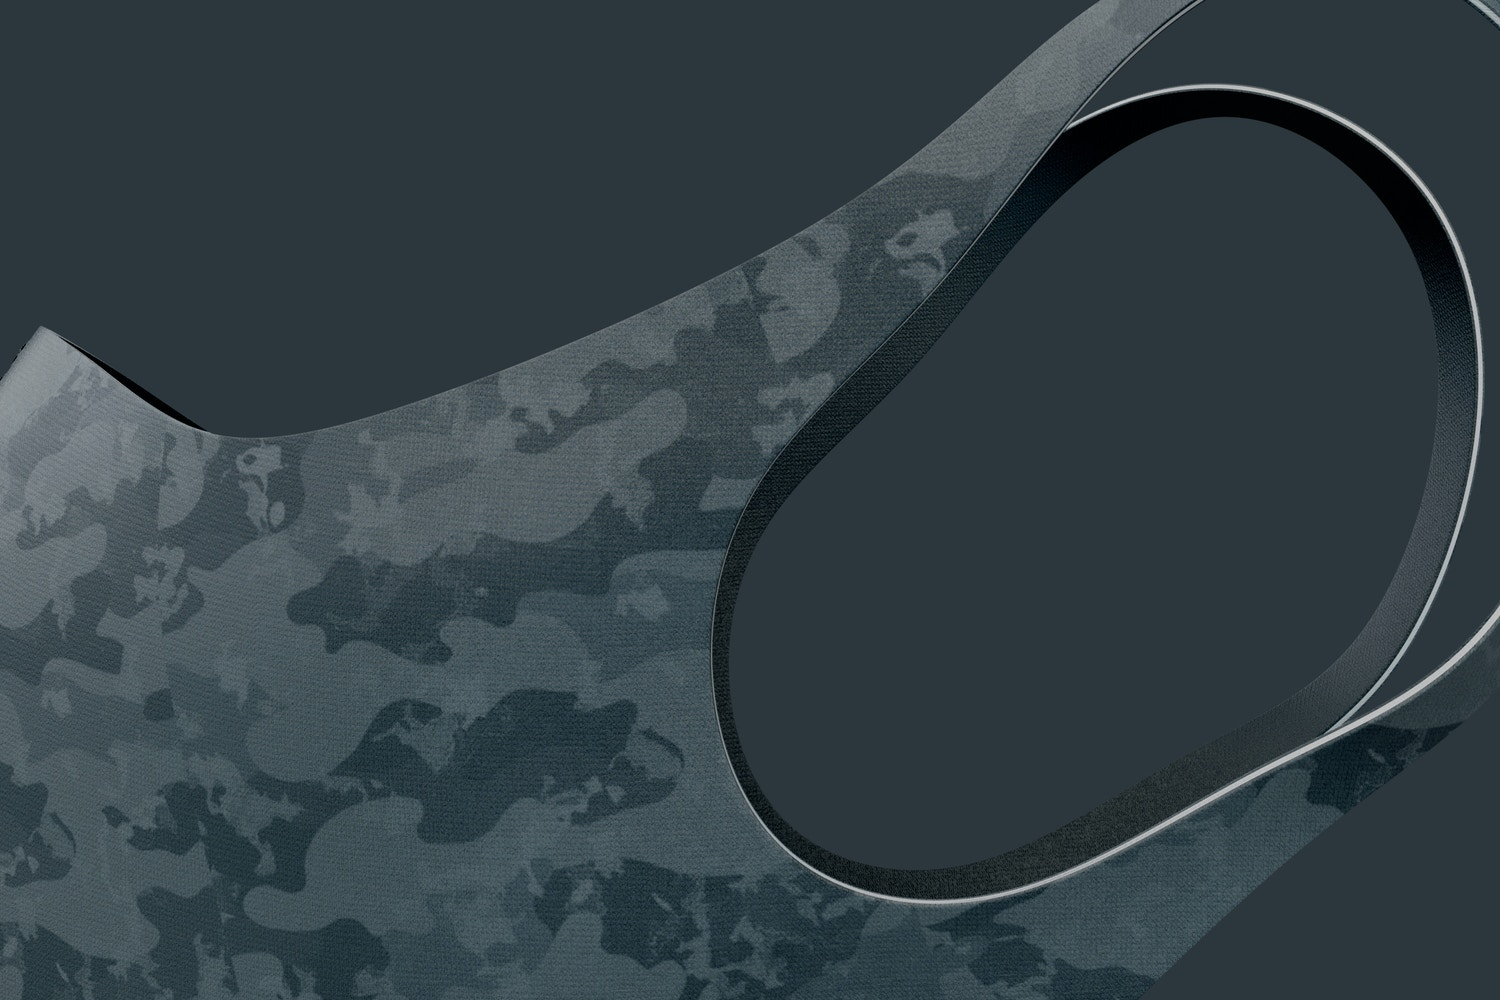 Neoprene Guard Face Mask Mockup, Right View 02